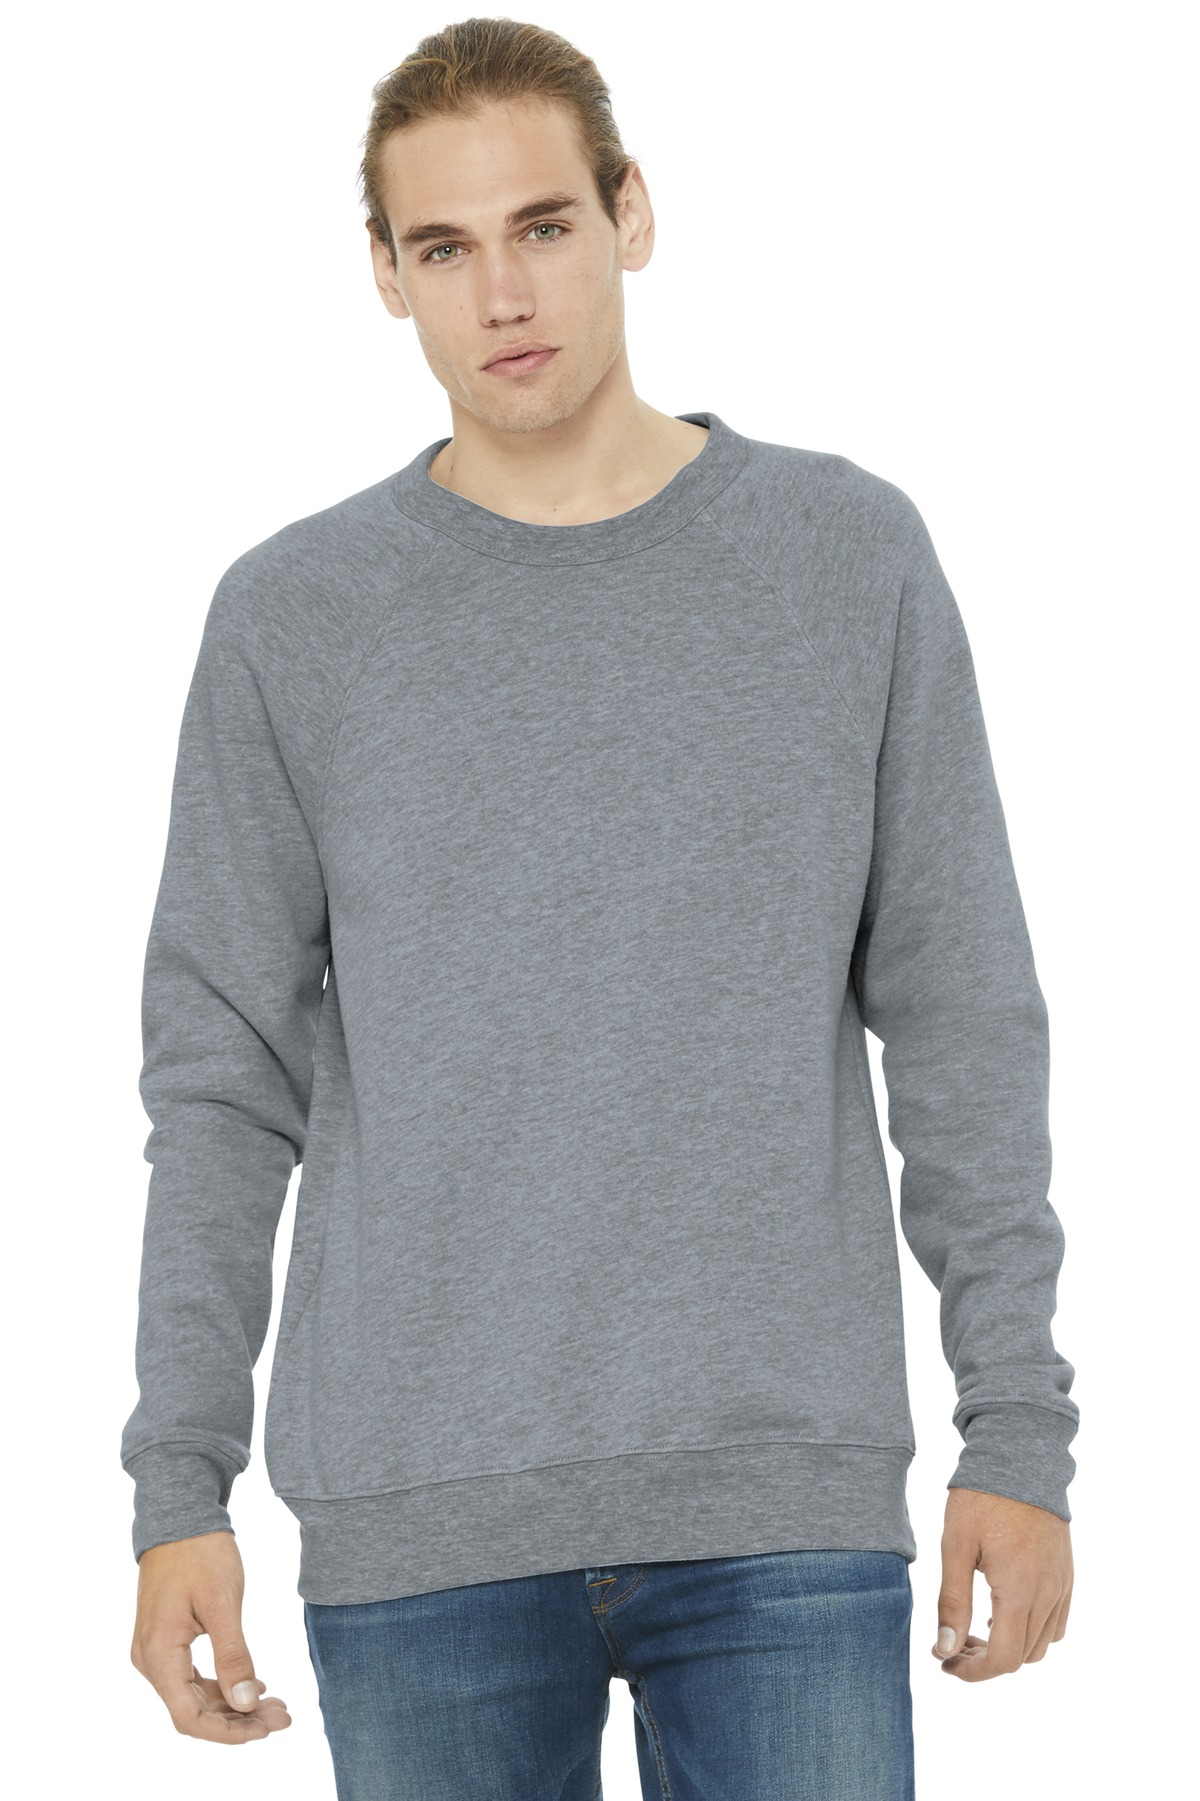 BELLA+CANVAS  ®  Unisex Sponge Fleece Raglan Sweatshirt. BC3901 - Athletic Heather